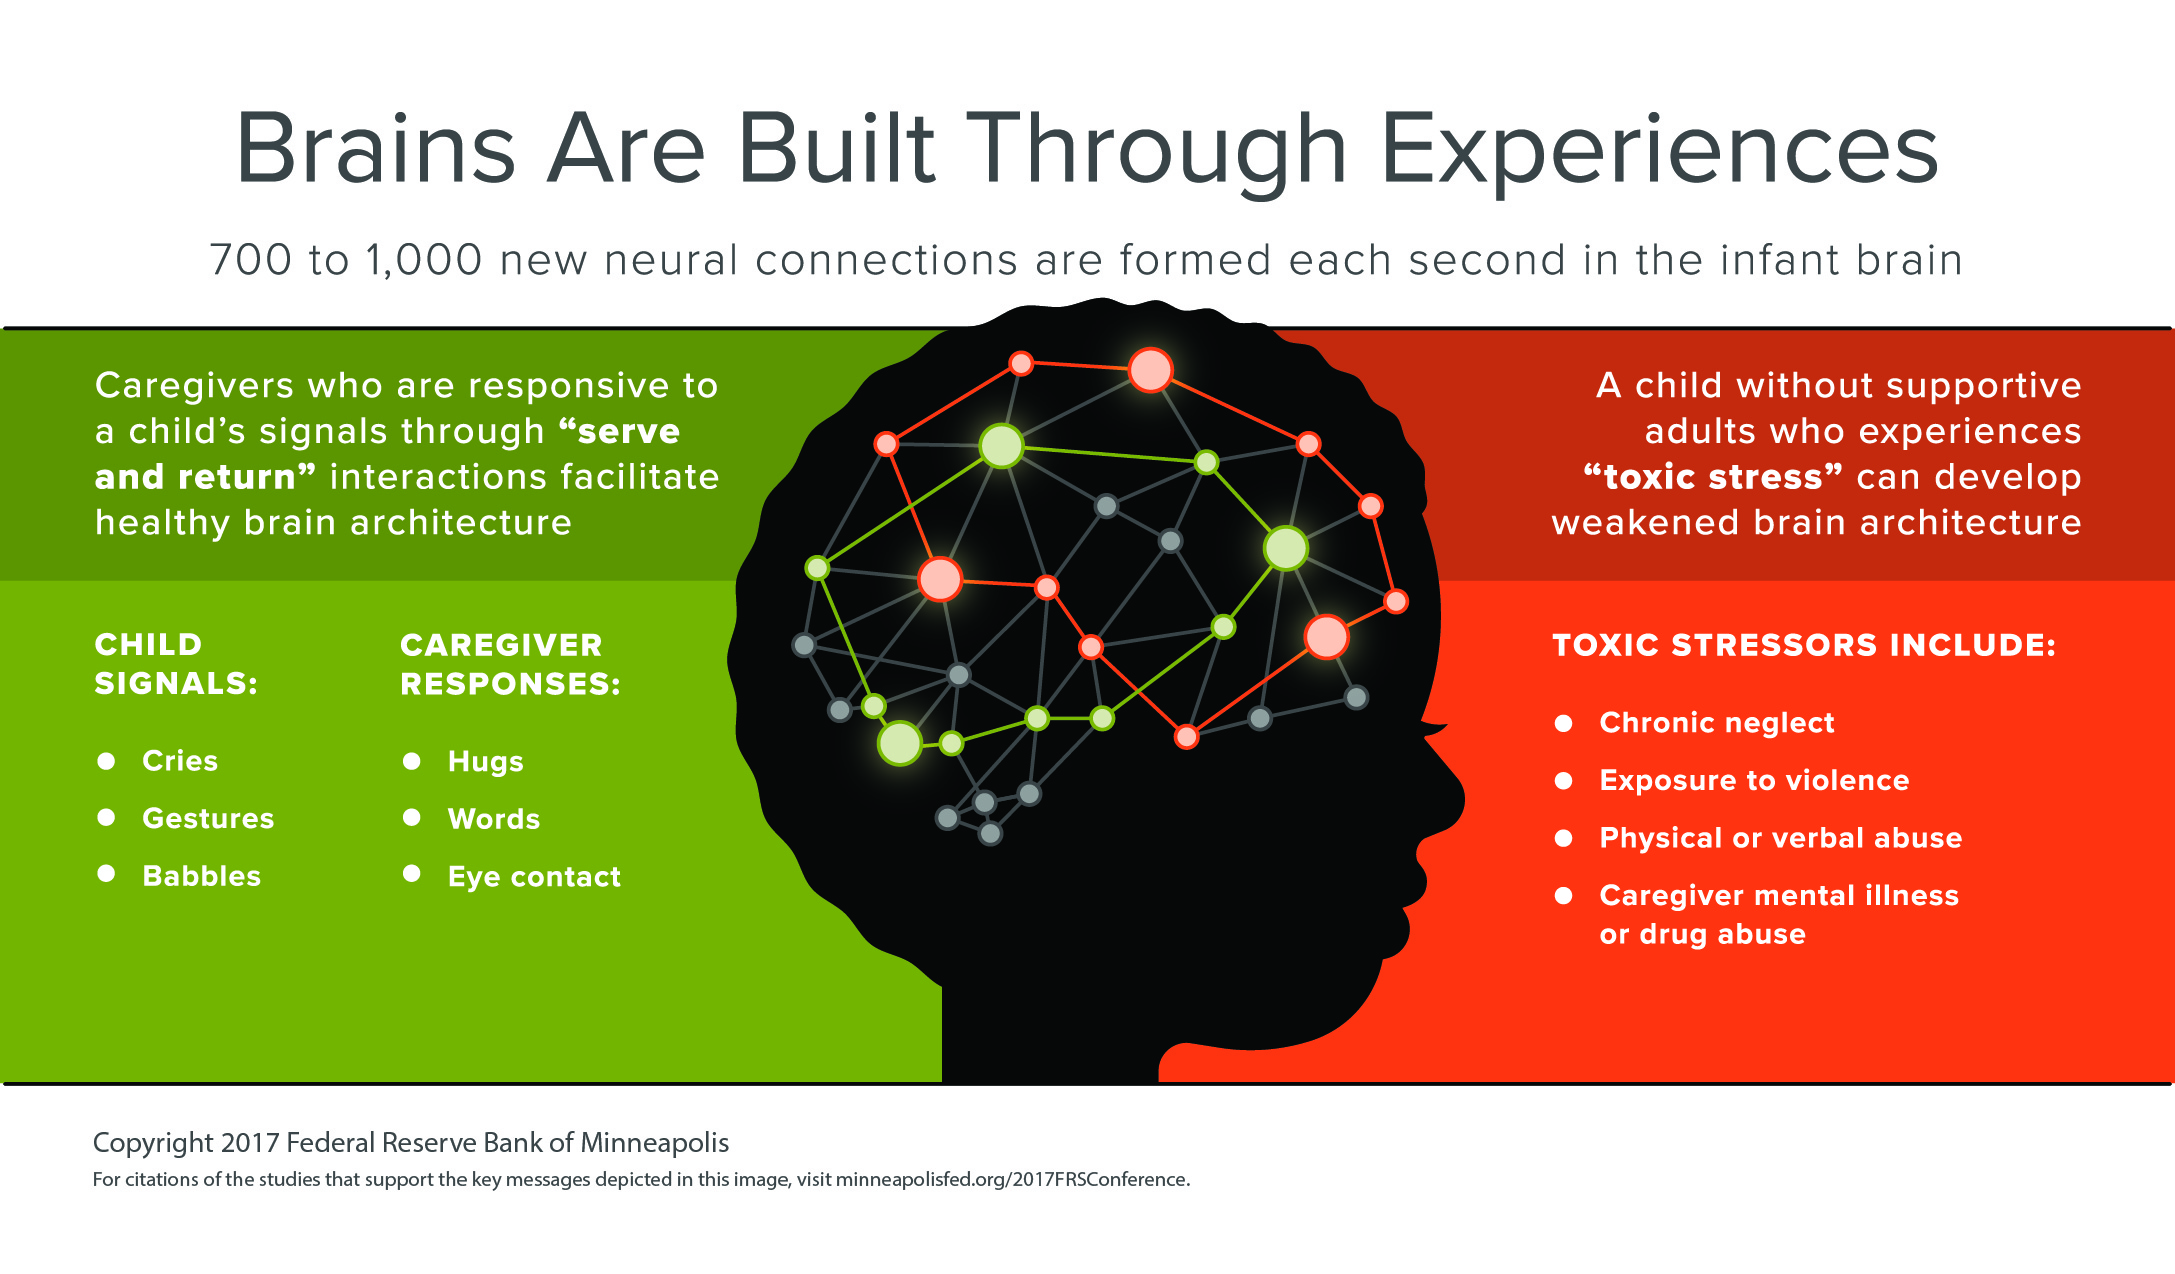 Brains Are Built Through Experiences